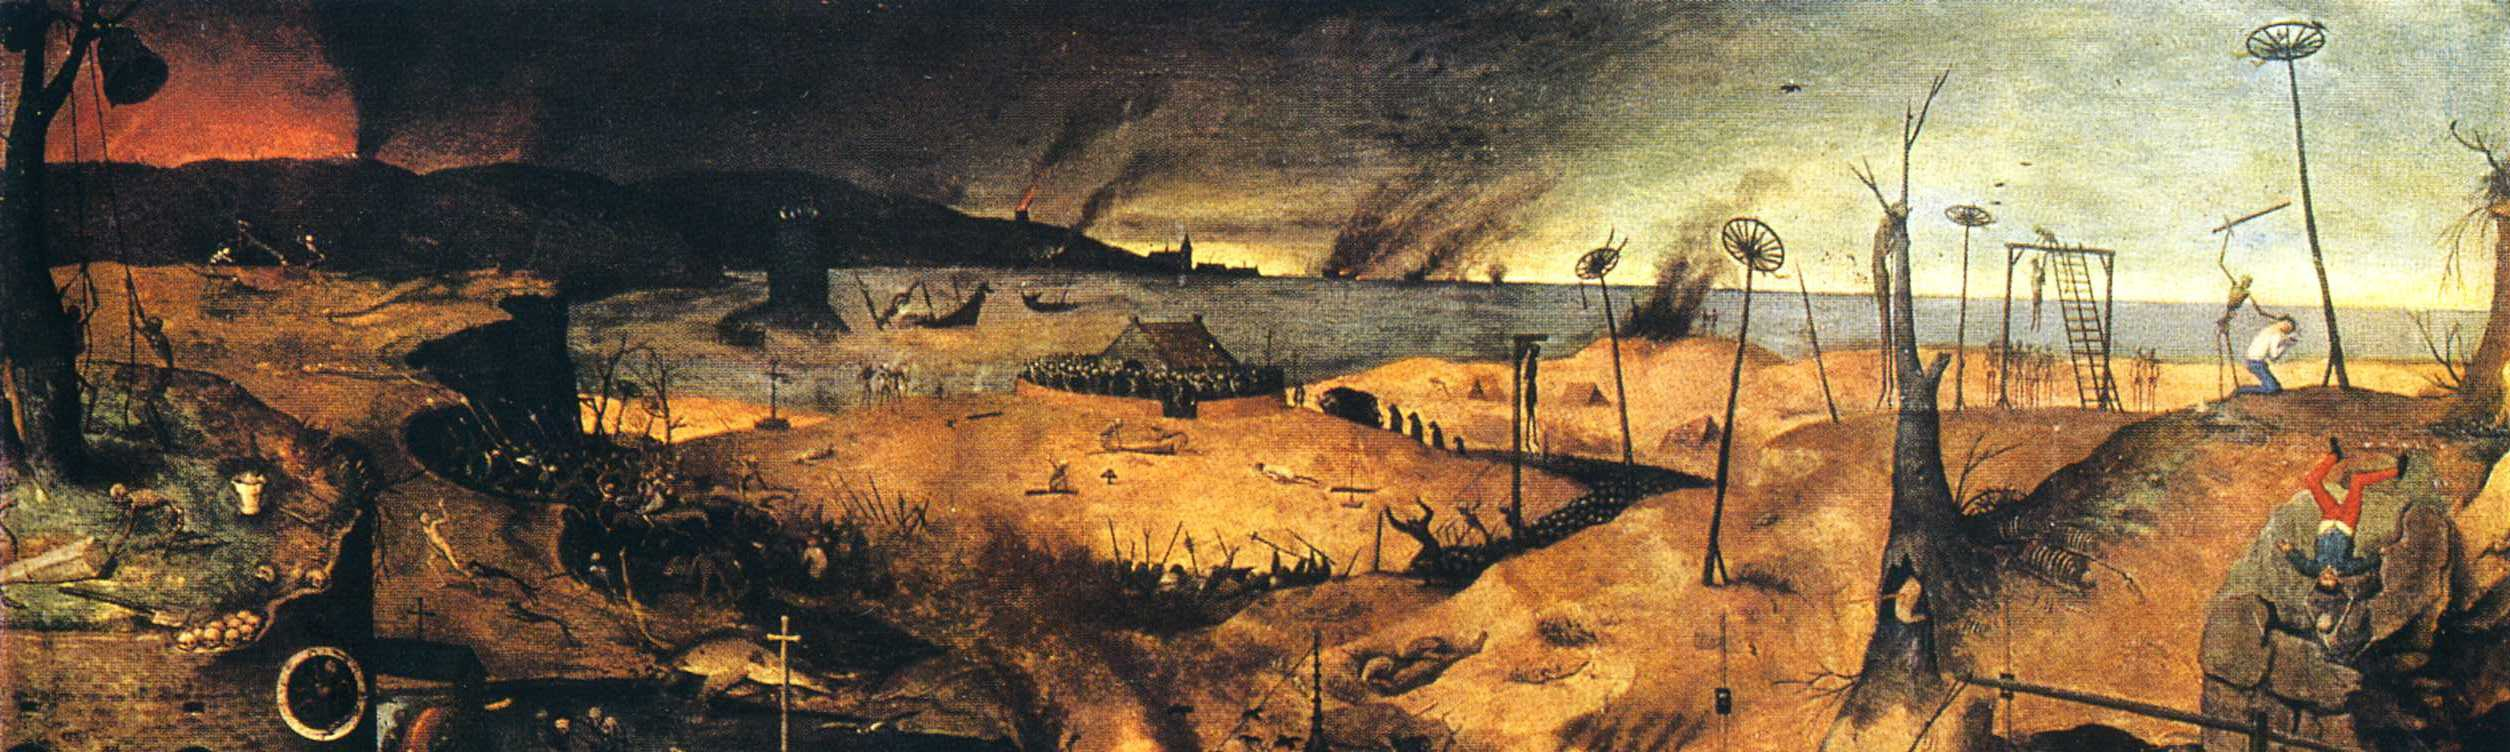 ts eliots the burial of the dead essay A very short analysis of t s eliot's the waste land  (baudelaire is quoted by eliot in the closing line of 'the burial of the dead  eliot wrote an essay .